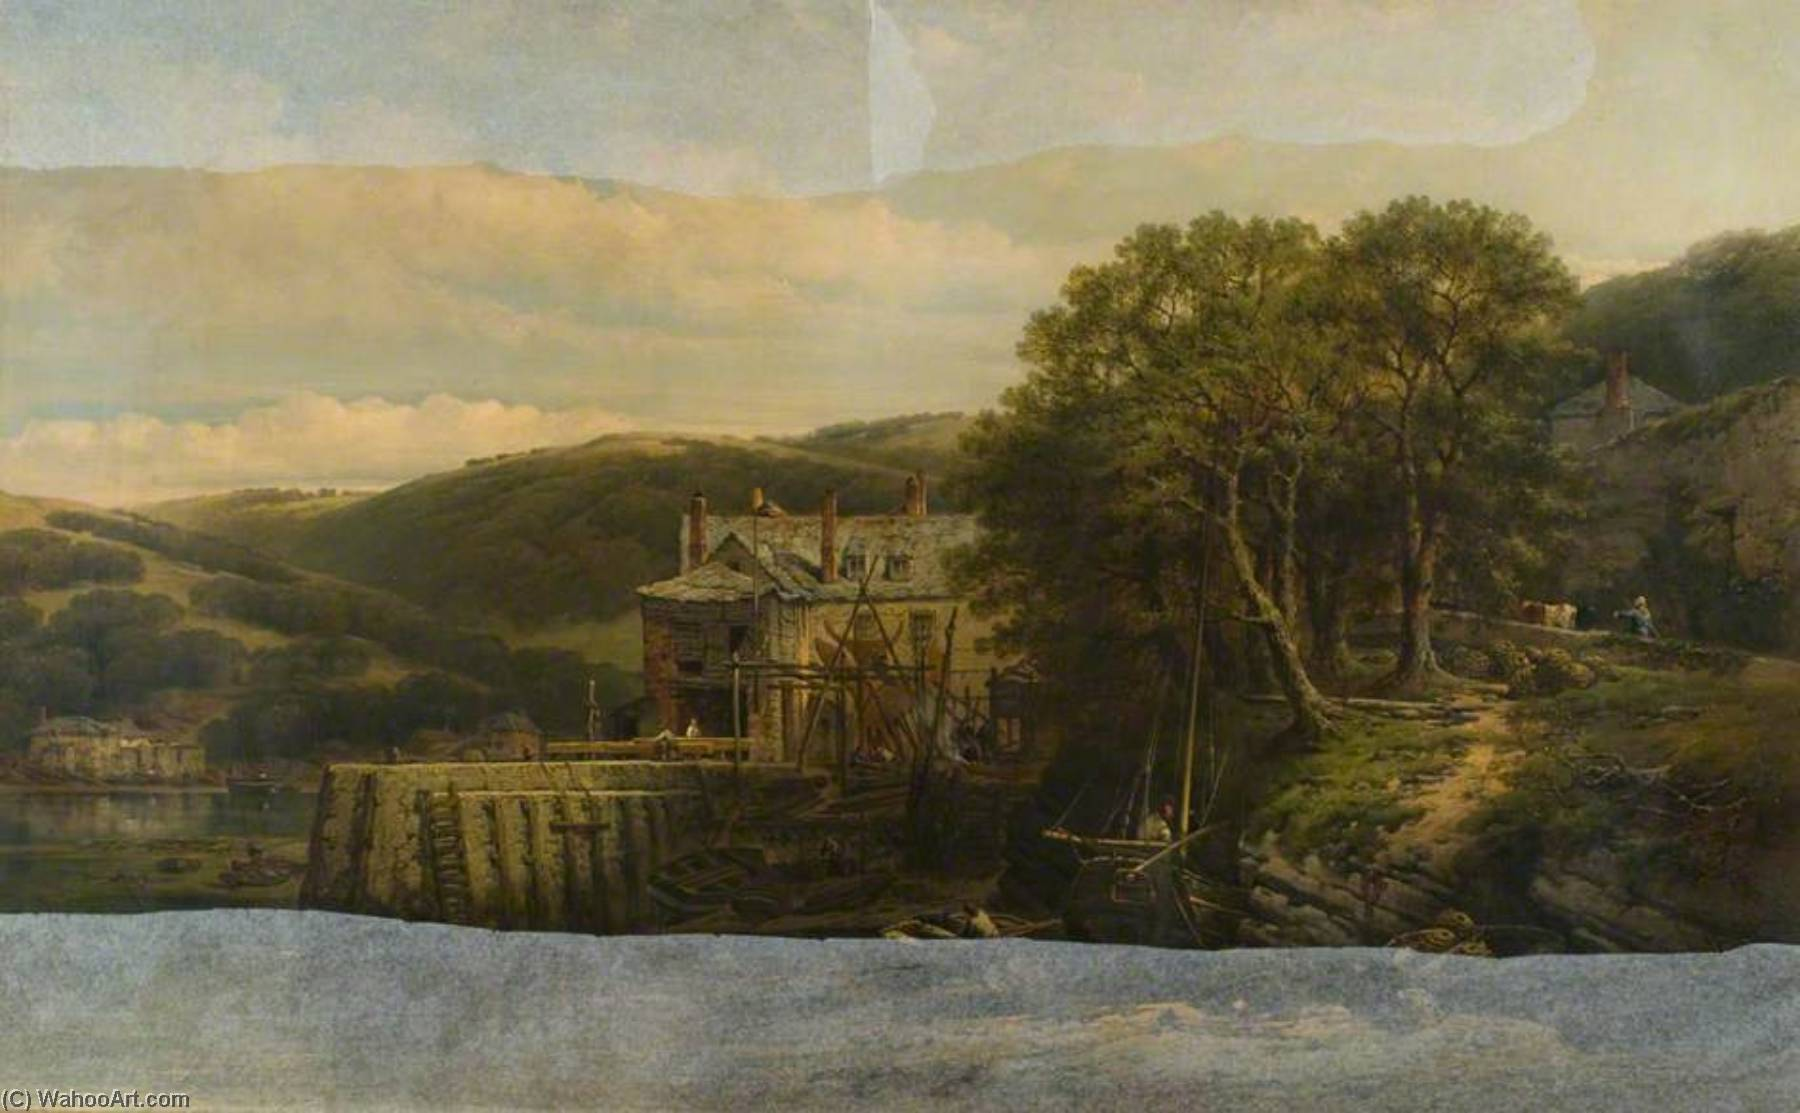 Kingsweir on the Dart, Devon, 1864 by William Pitt | Art Reproduction | WahooArt.com